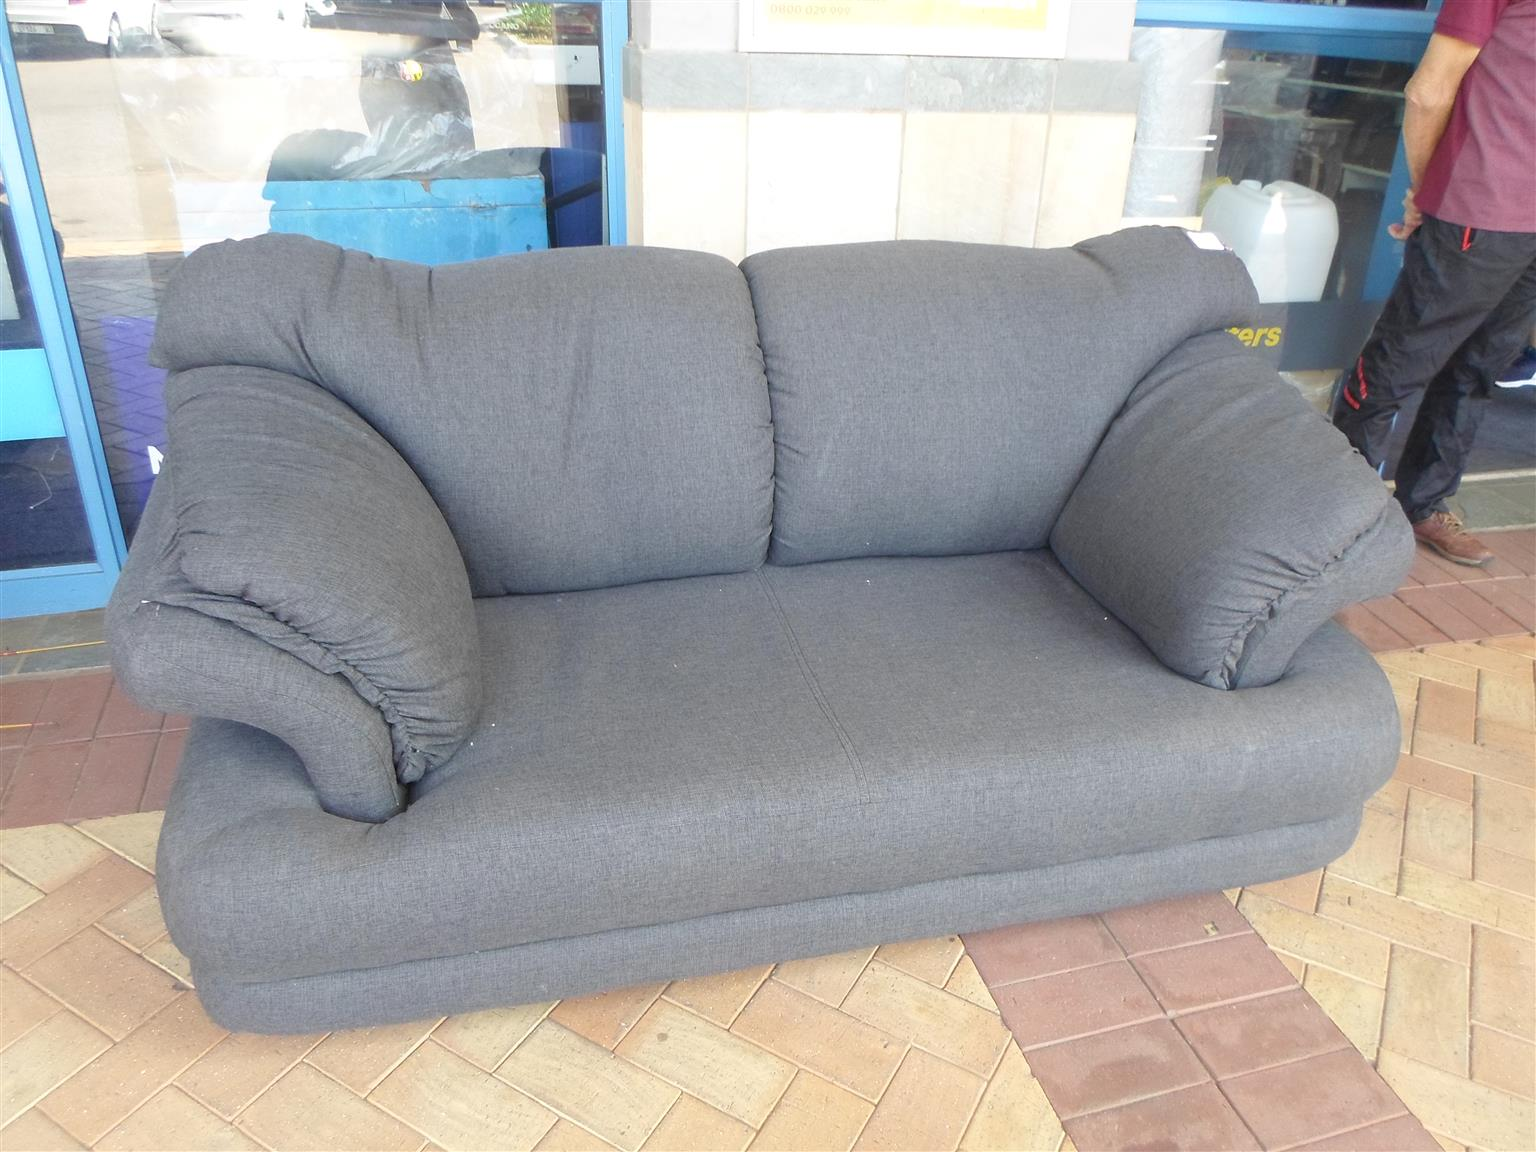 Upholstered 2 Seater Couch